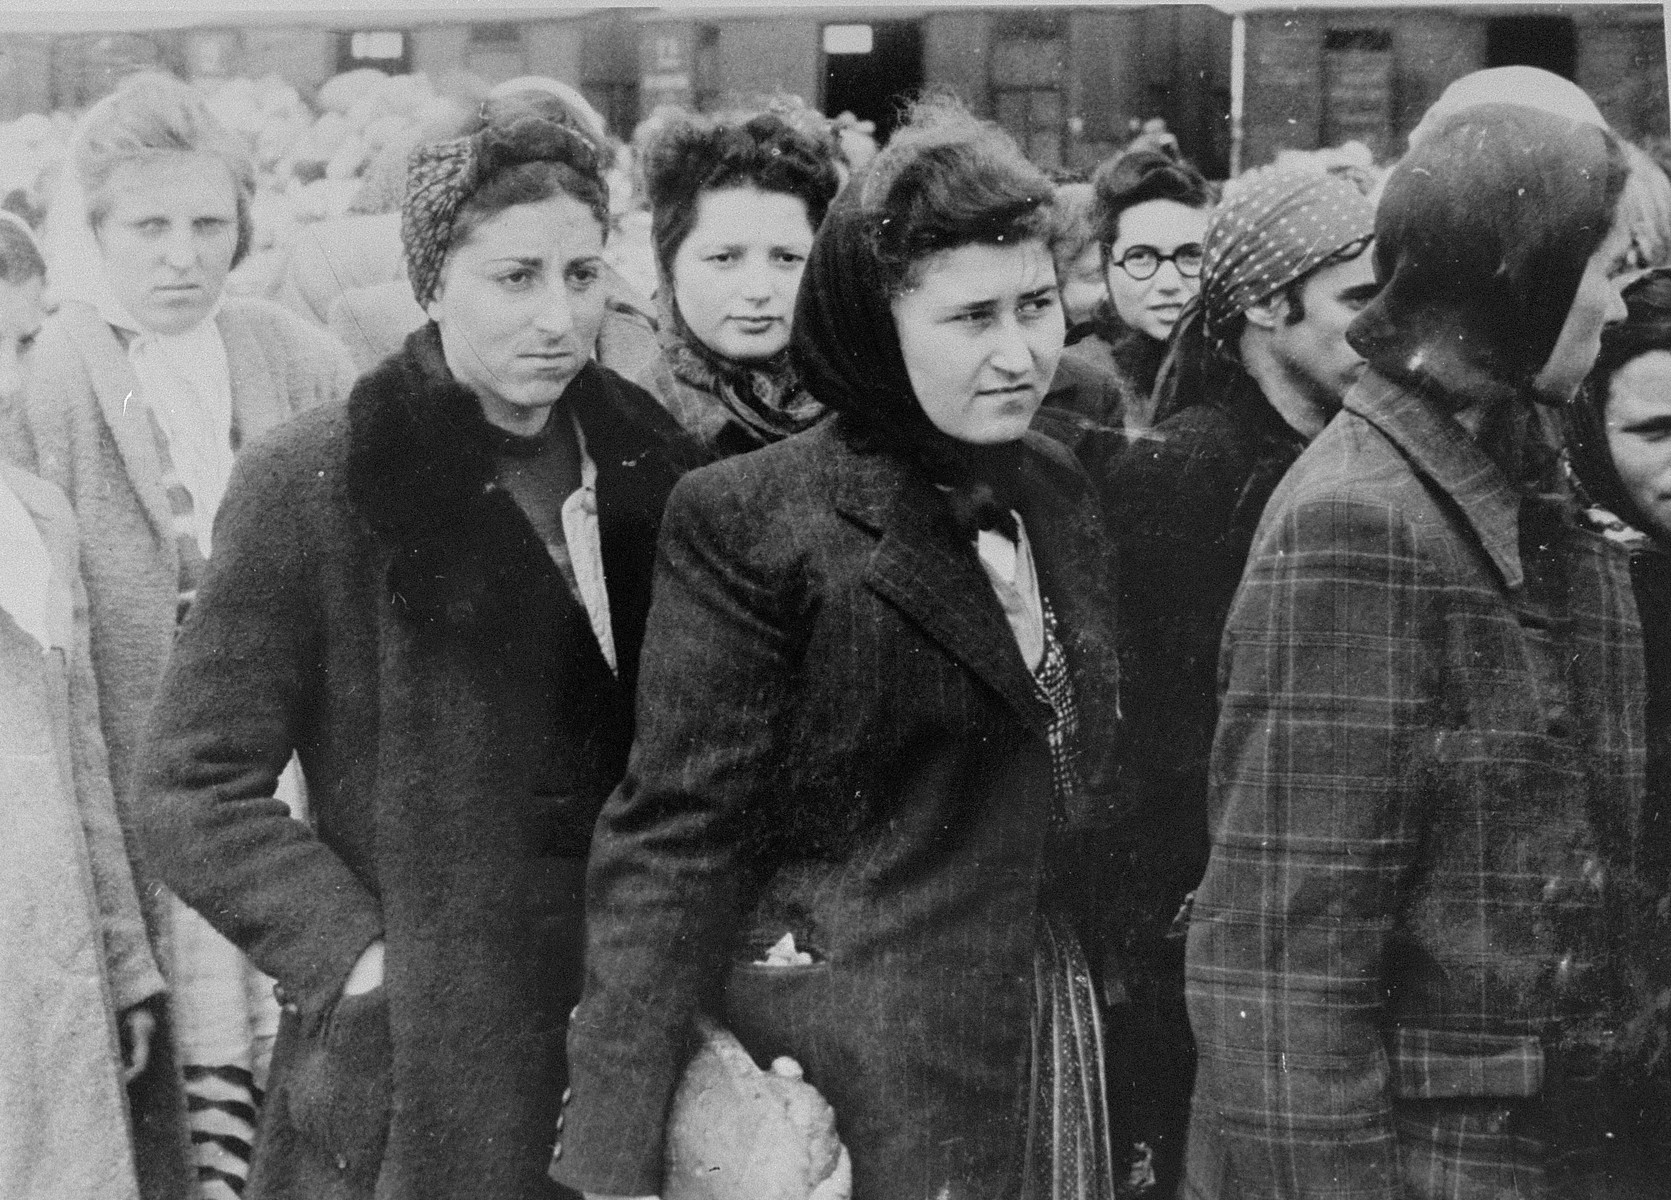 Jewish women from Subcarpathian Rus await selection on the ramp at Auschwitz-Birkenau.  Among those pictured is Chava Maged (first from the left, in the back) from Tecevo. Partially obscured to her right is her younger sister, Esther.  In front of her is Sury Moskovics from Visk. Rochi Falkovics stands in the front row.  Behind her on the left is Sury Fuks and her sister (wearing glasses).